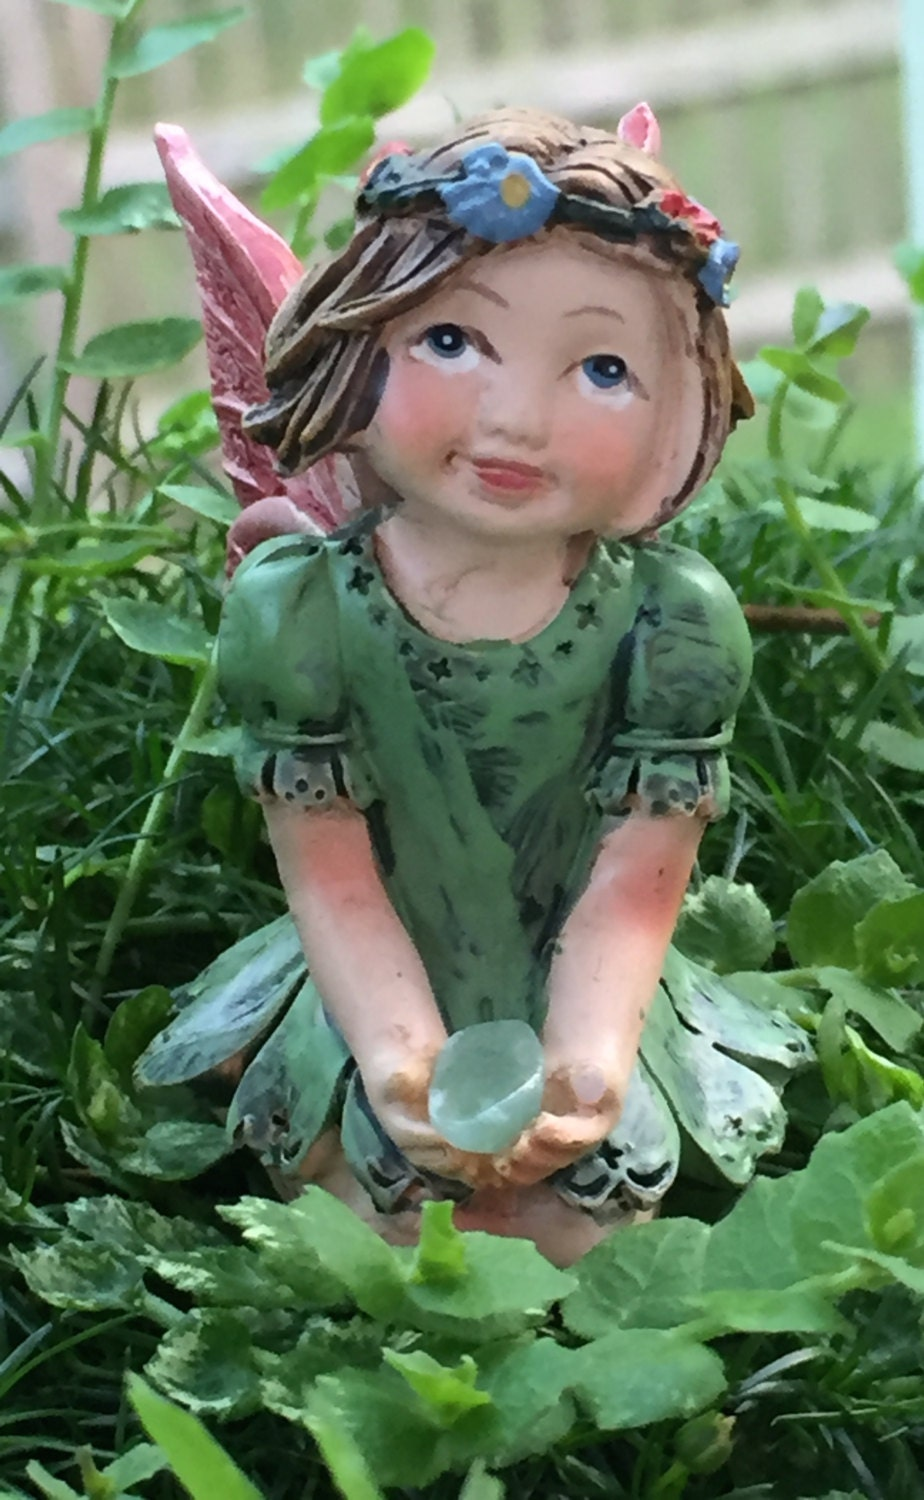 Sale sweet flower crown fairy figurine kneeling fairy green dress sale sweet flower crown fairy figurine kneeling fairy green dress holding gem fairy garden accessory miniature garden decor topper izmirmasajfo